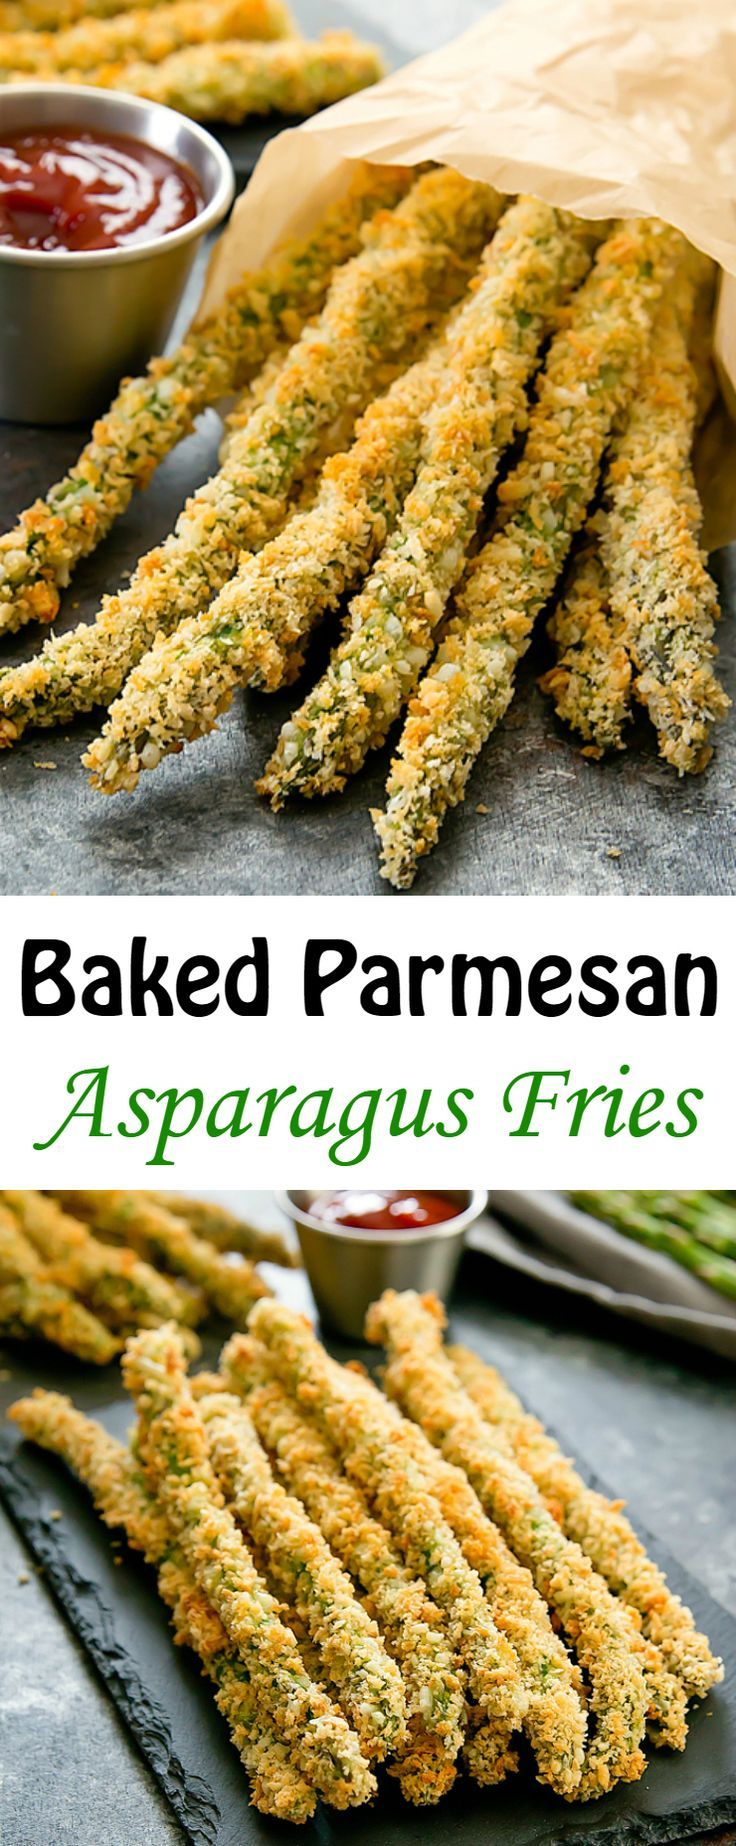 Crispy Baked Parmesan Asparagus Fries: these were a fun guilt free appetizer while watching foorball! I skipped the panko and the extra steps with that came with panko. I used seasoned crumbs...tasted great!